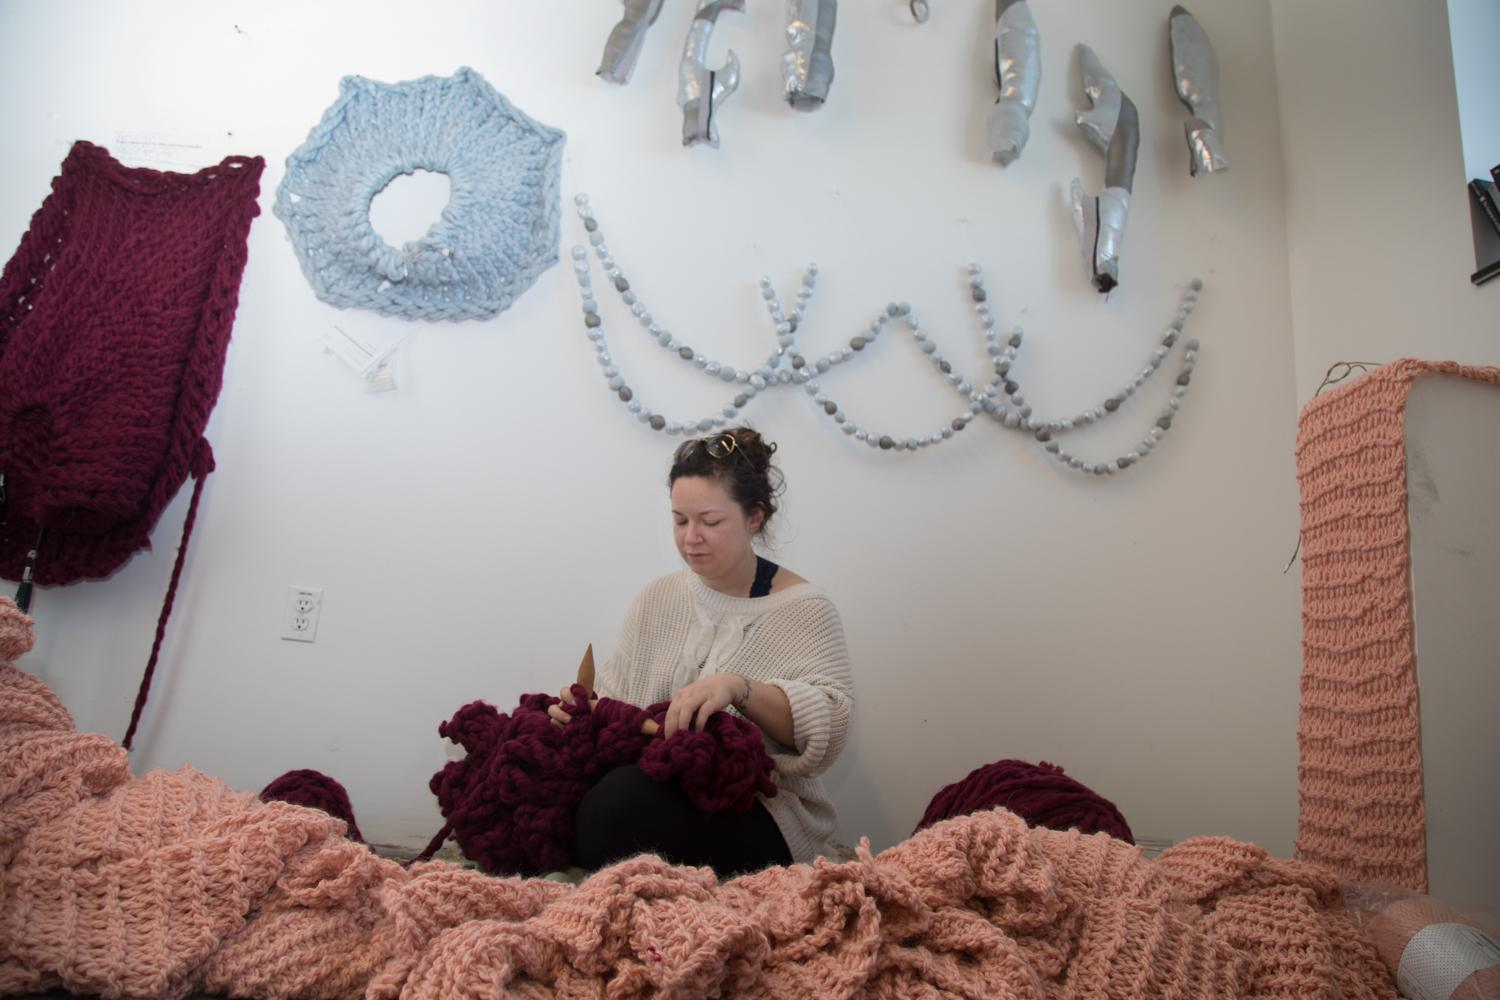 MFA candidate and graduate student, Meghan Chase, knits for her MFA thesis project in her studio.